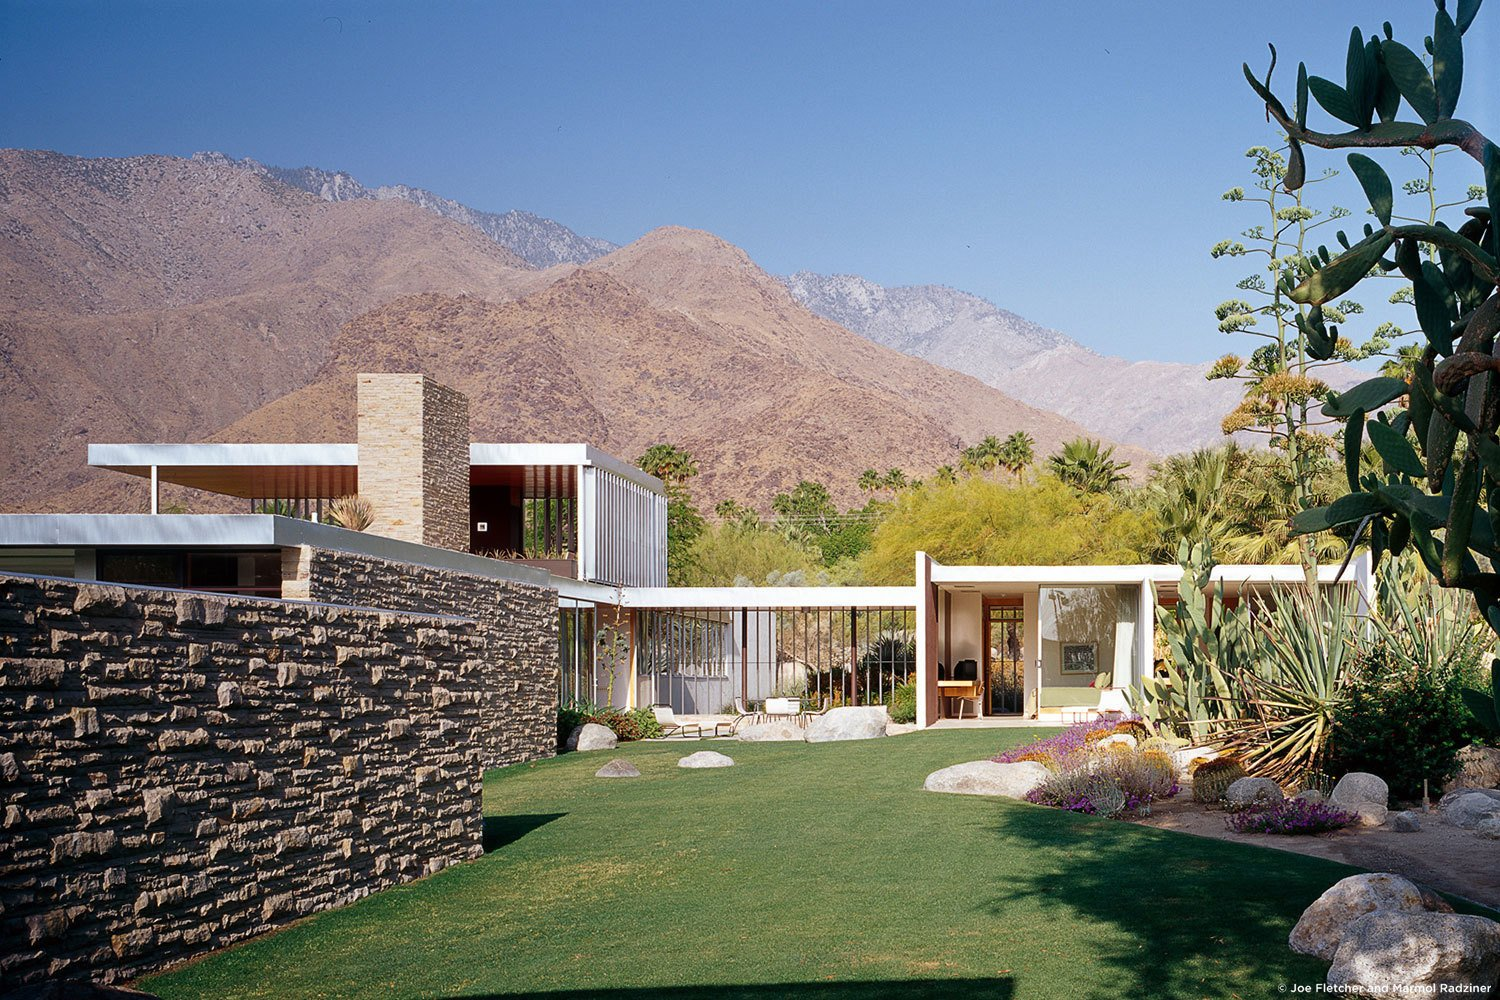 Outdoor, Grass, Back Yard, Gardens, Flowers, Desert, Boulders, Side Yard, Stone, and Hardscapes #KaufmannHouse #modern #midcentury #Nuetra #1946 #restoration #archival #original #details #lighting #windows #exterior #outside #outdoors #landscape #views #green #PalmSprings #California #MarmolRadziner   Best Outdoor Boulders Desert Photos from Kaufmann House